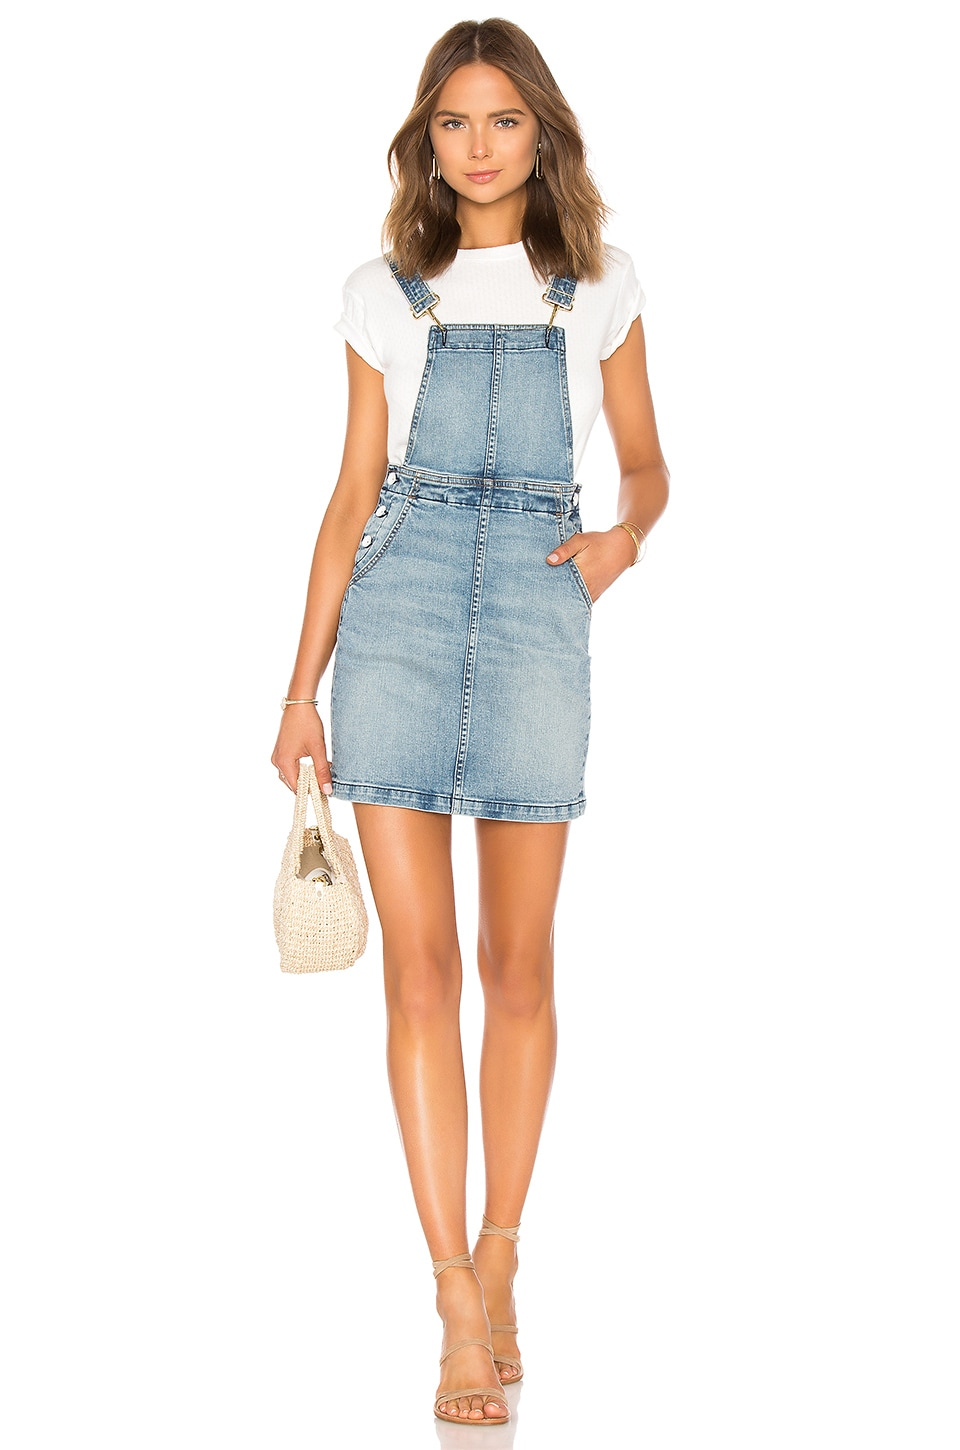 FATHER'S DAUGHTER Gail Overall Dress in Salt